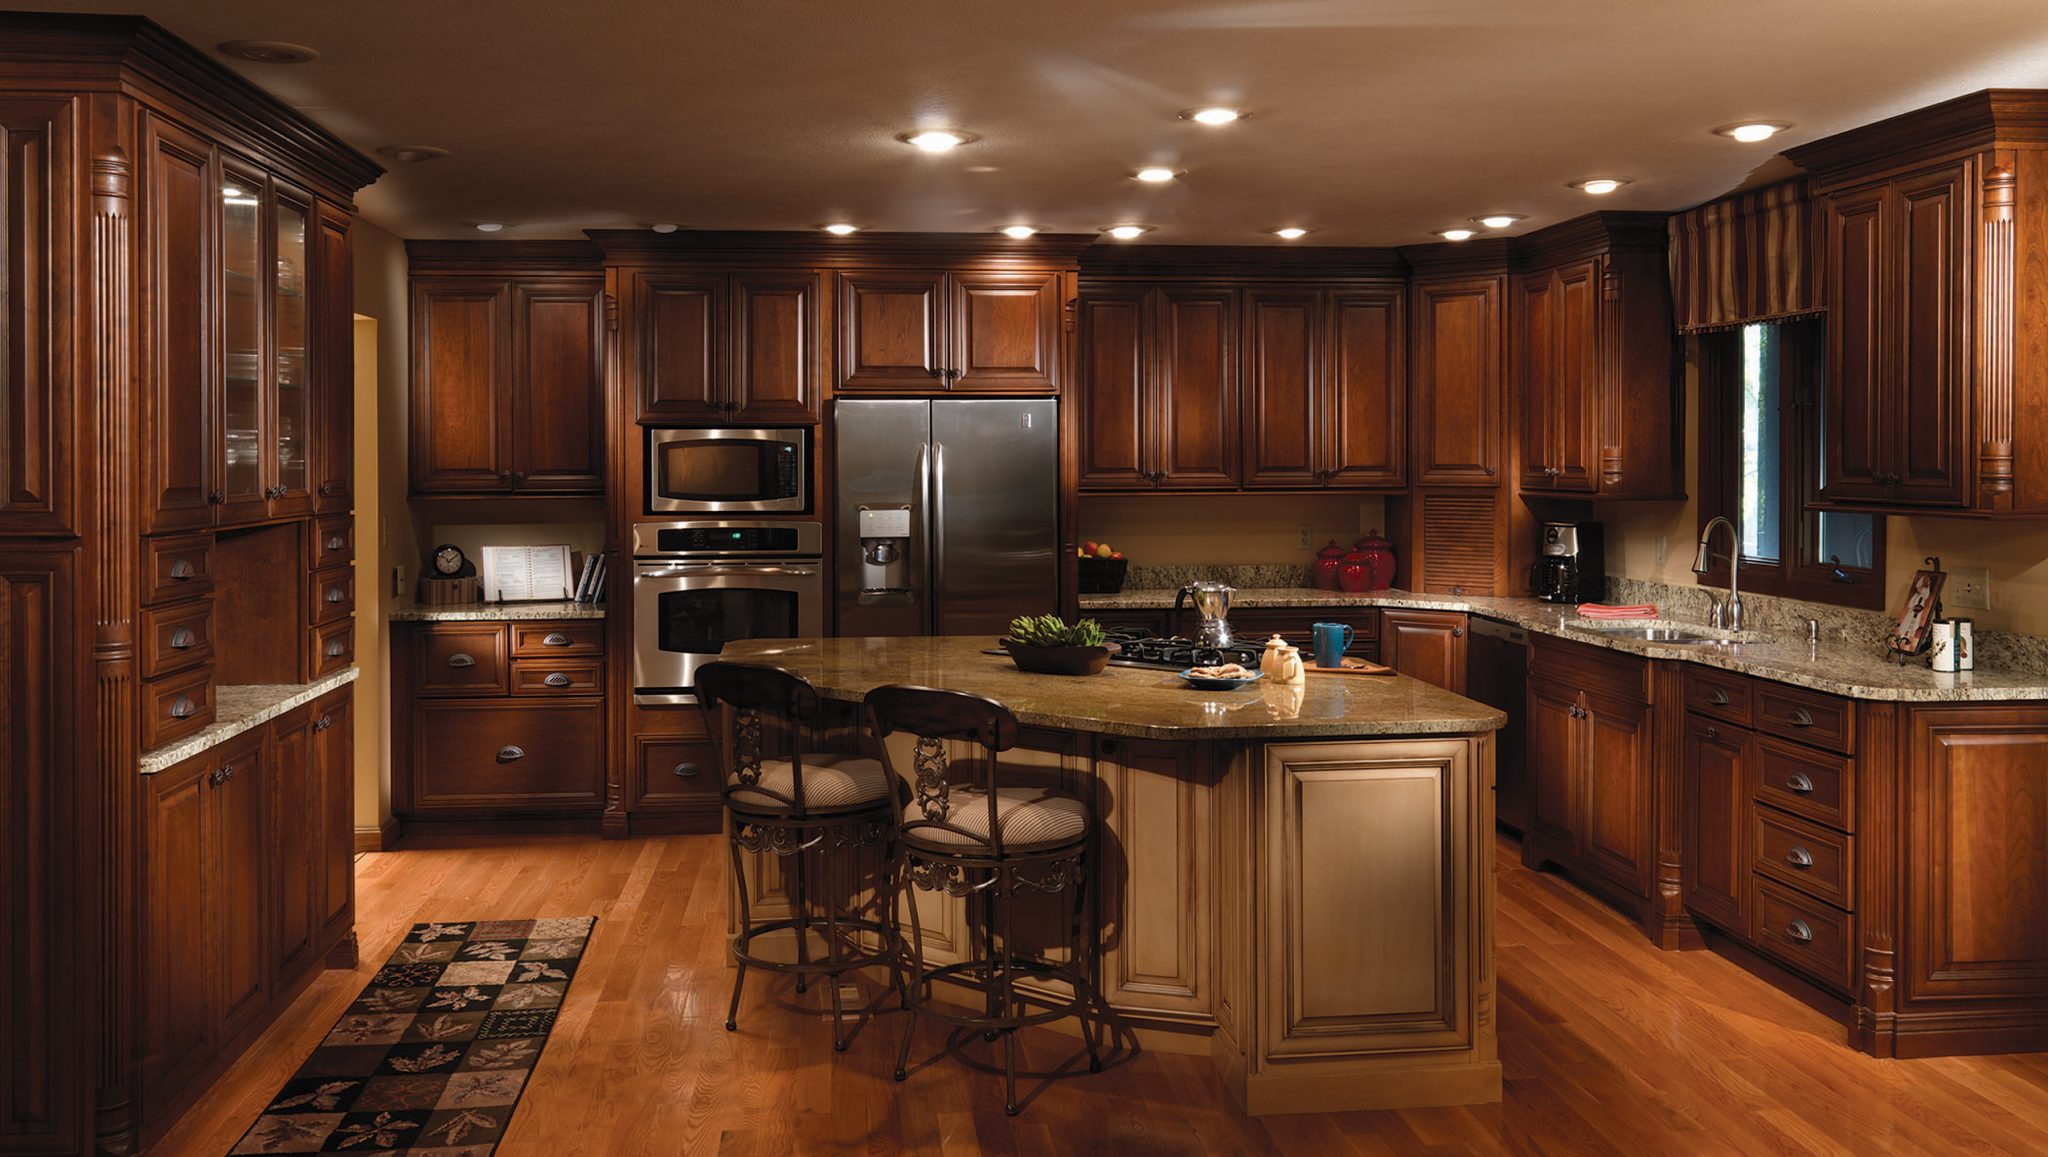 Creative Kitchens Baths Plus Inc Kitchen Cabinets Bathroom Cabinets Vanity Cabinets Closet Cabinets